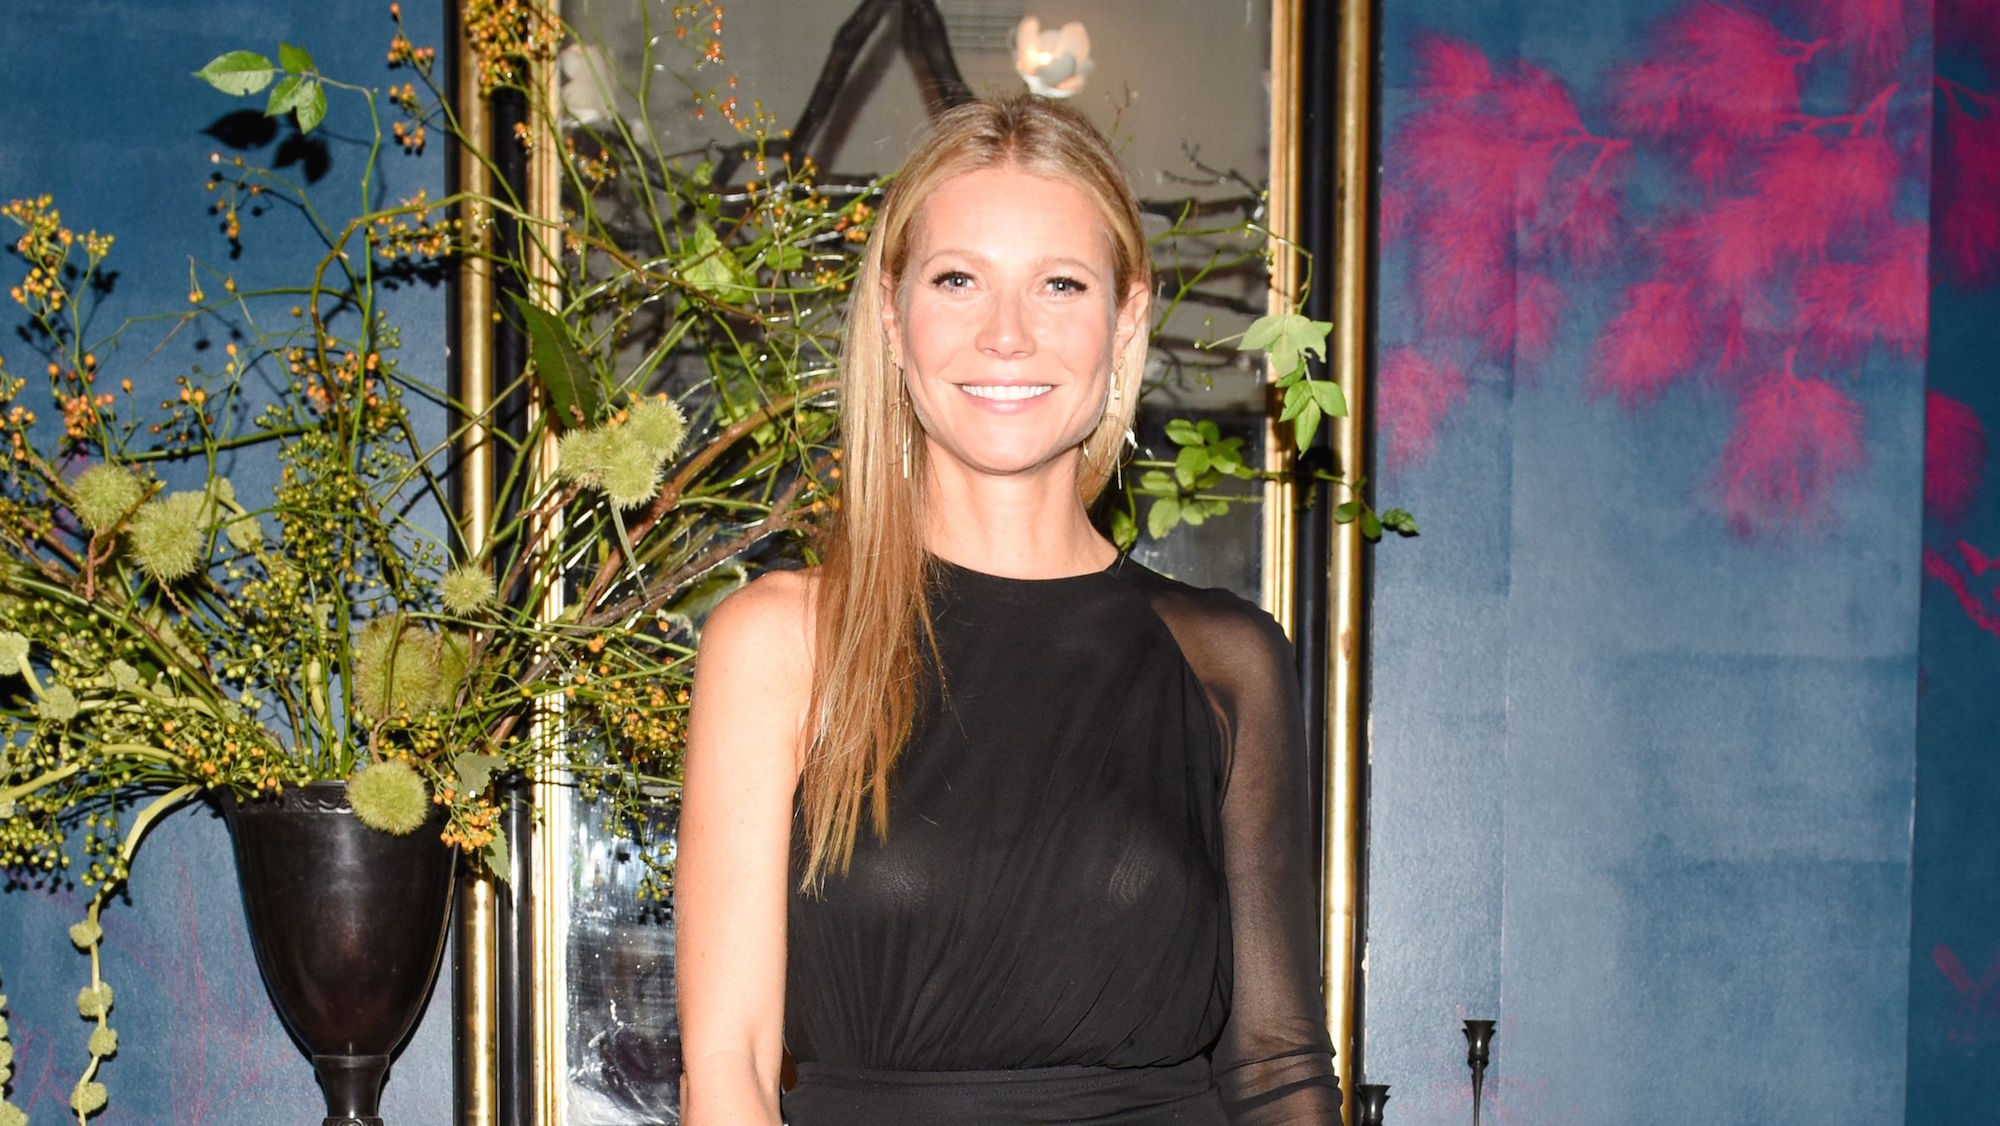 Gwyneth Paltrow says criticism of Goop is deeply unfair pics